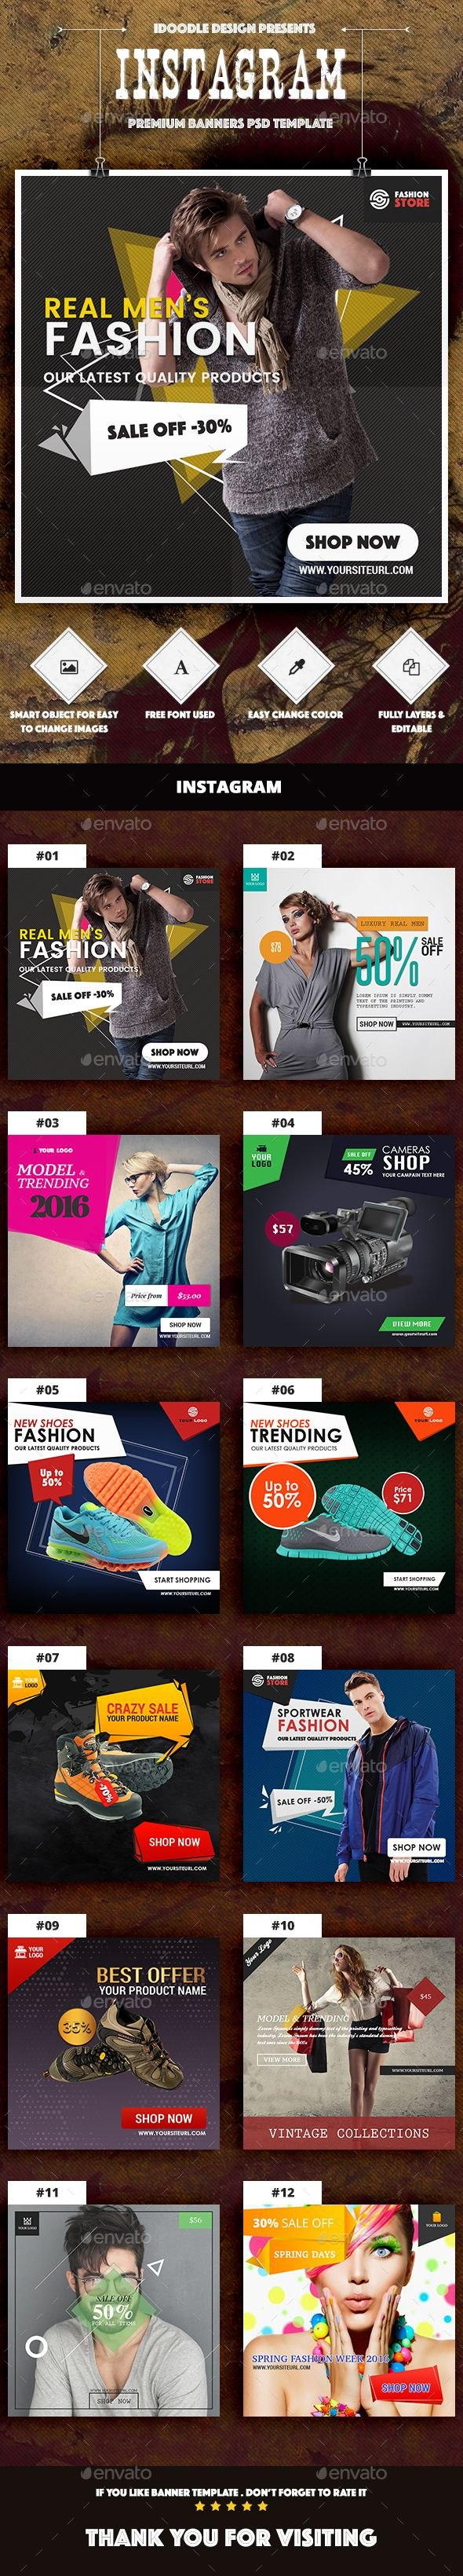 Instagram Product Banners Template Psd Ad Promotion  Social Media Regarding Product Banner Template